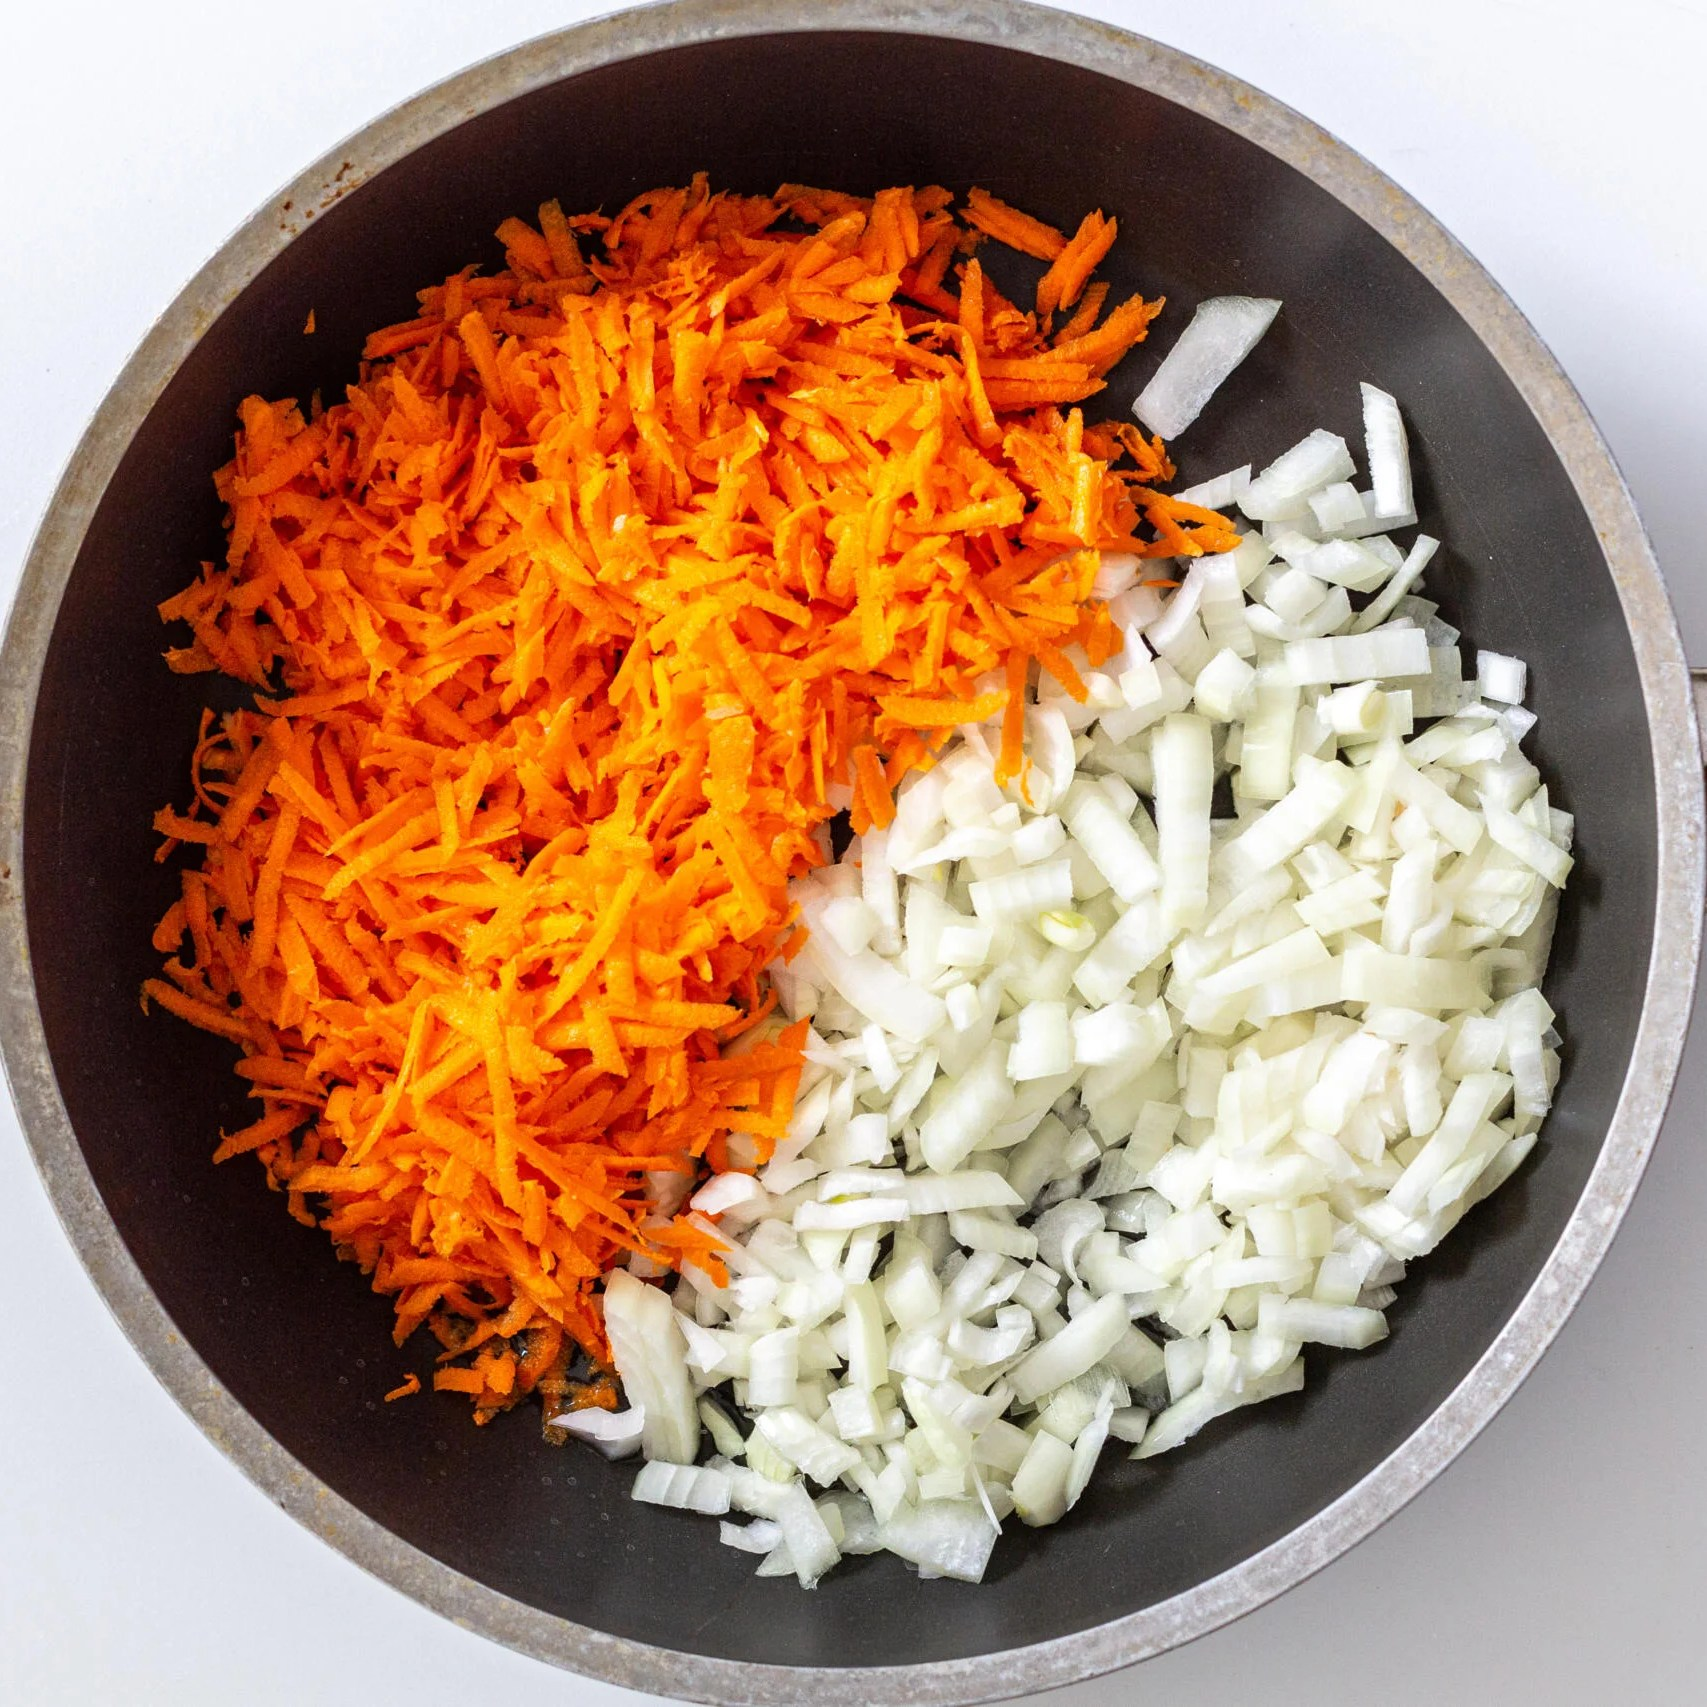 onion and carrot on a skillet